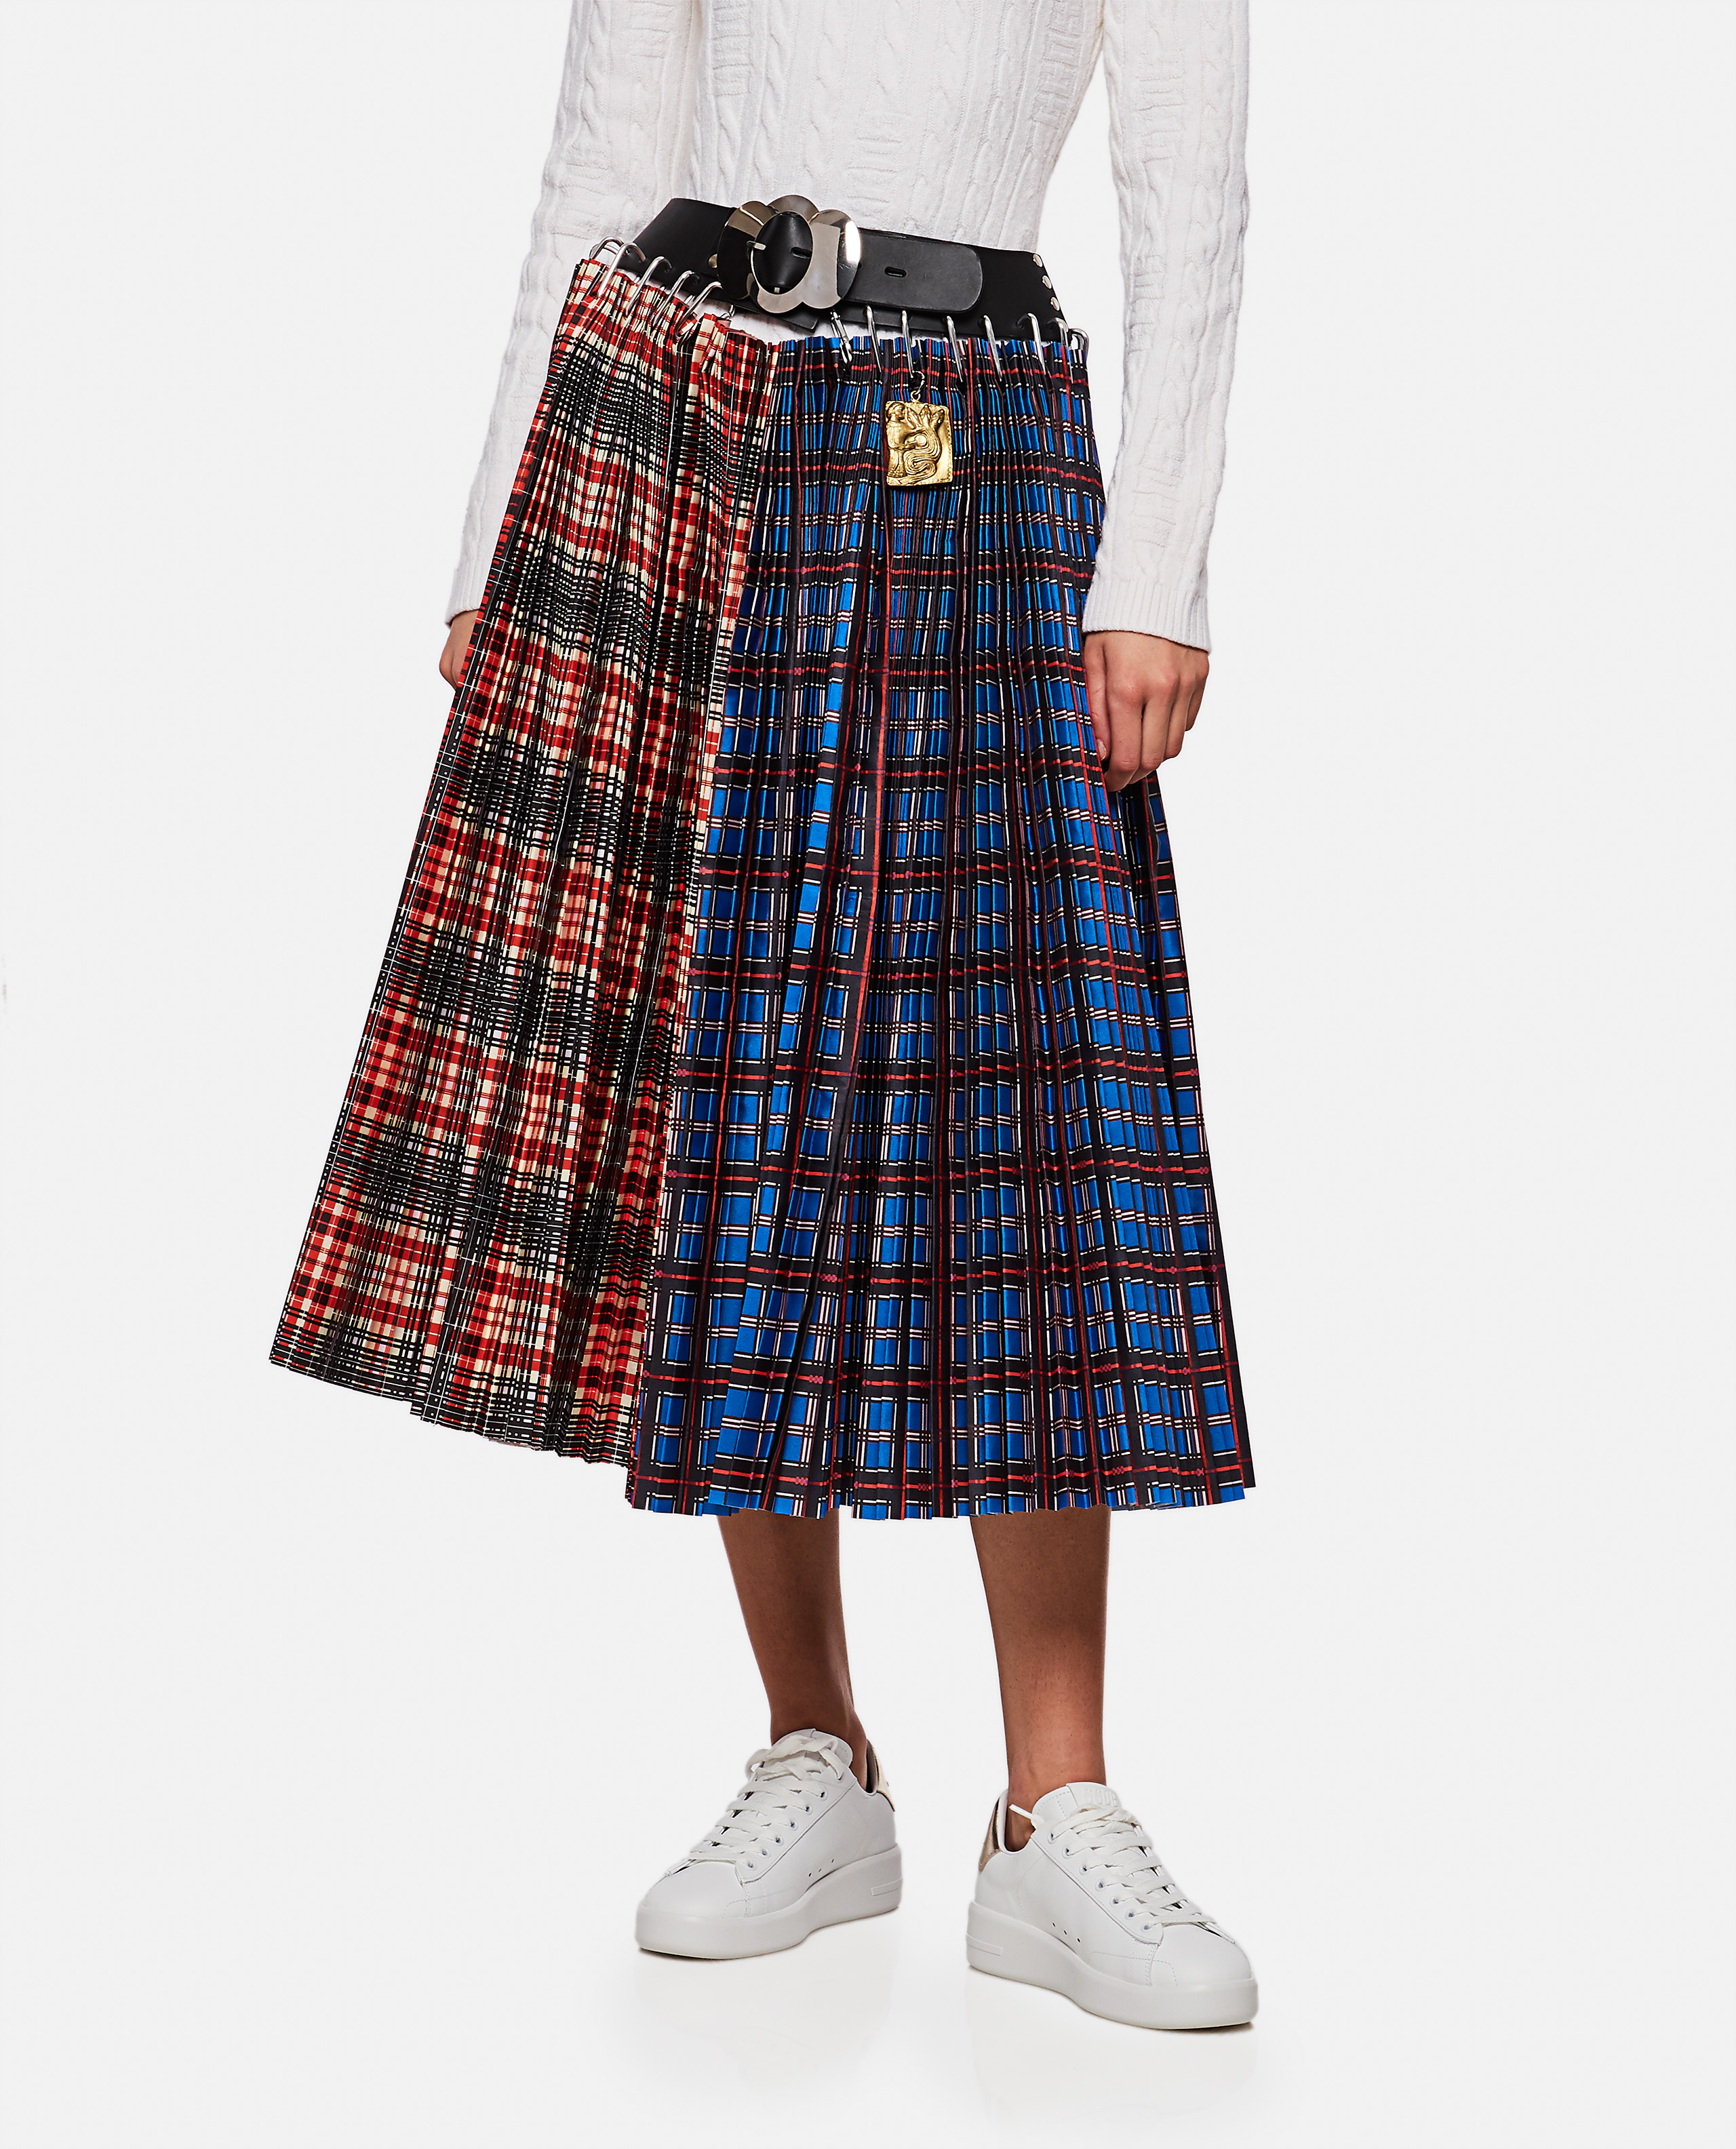 Cork pleated skirt with checked panels